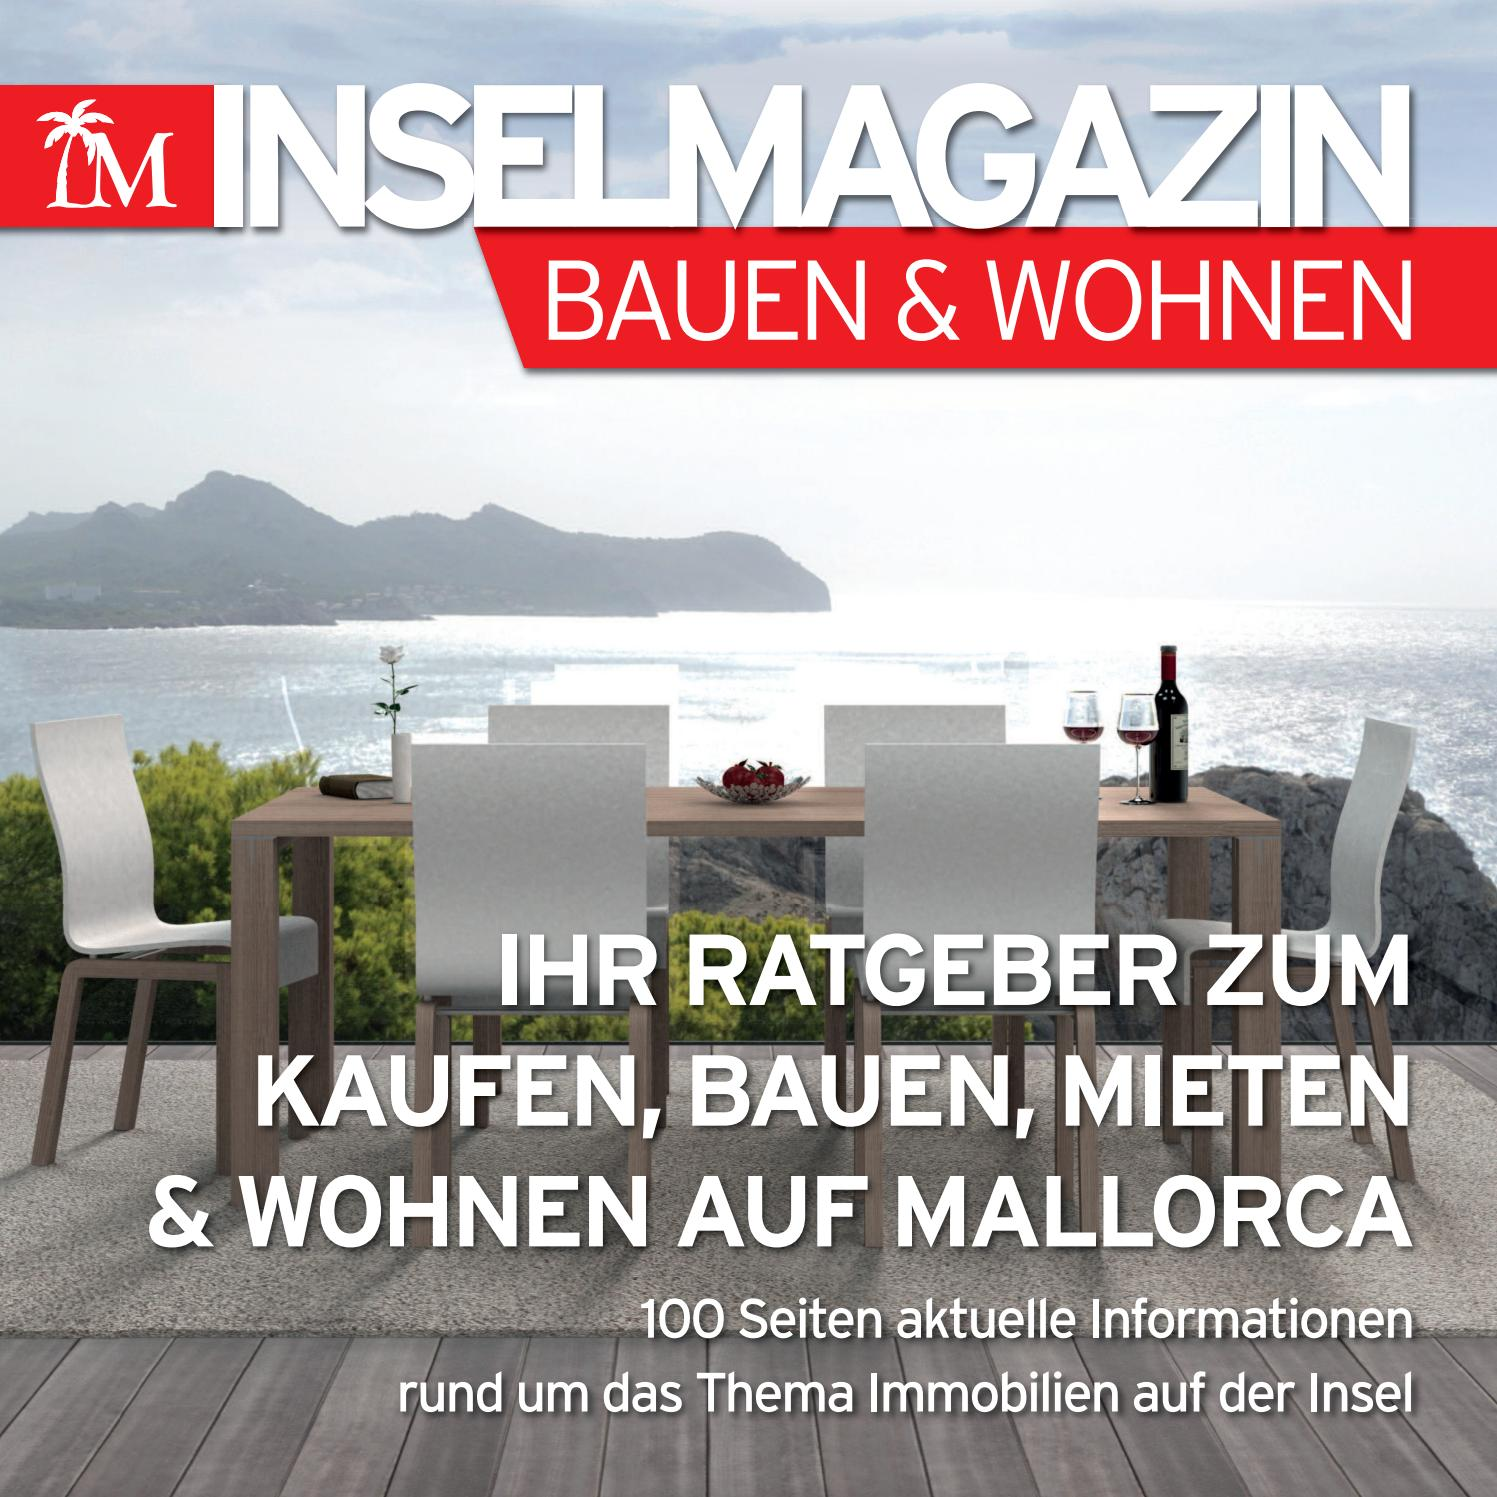 das inselmagazin bauen wohnen by die inselzeitung mallorca online issuu. Black Bedroom Furniture Sets. Home Design Ideas